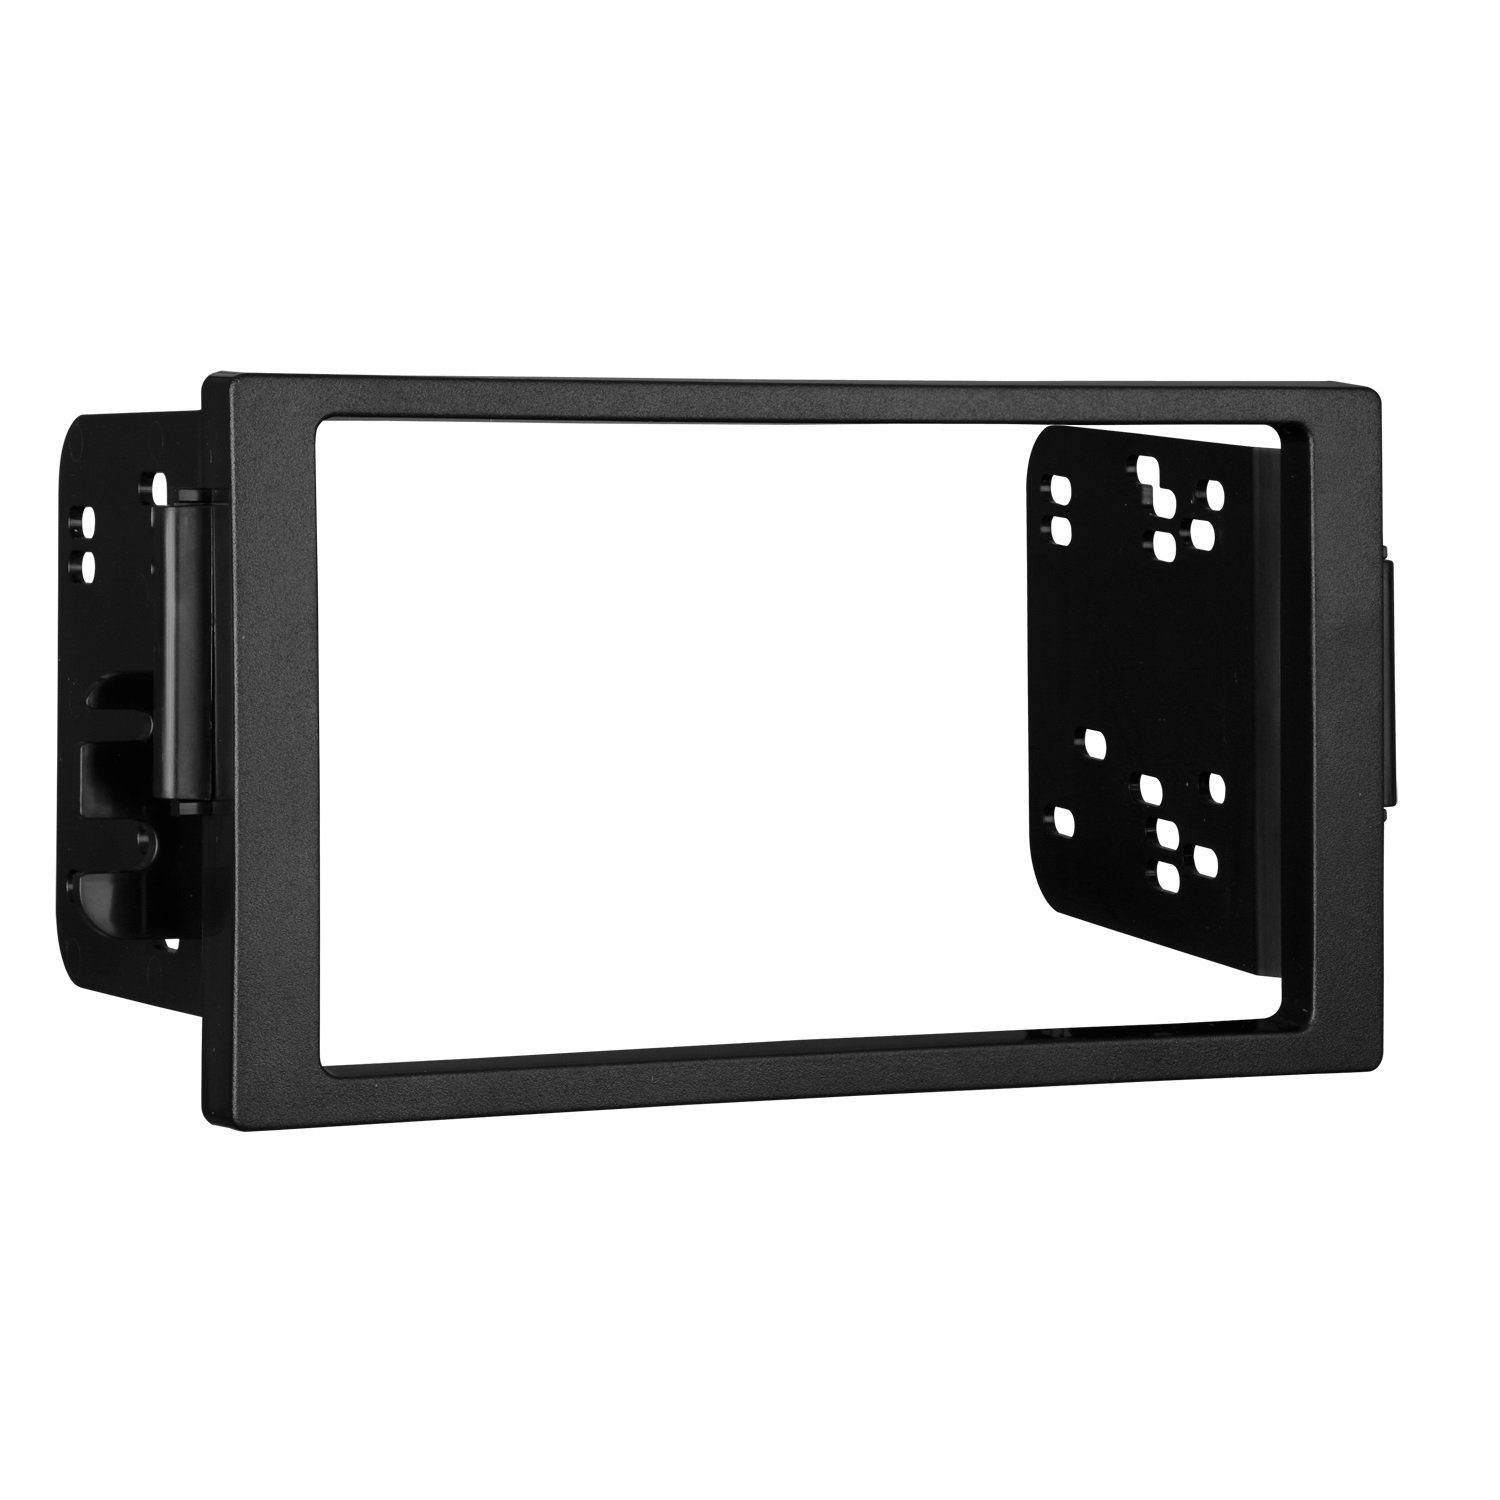 Metra 95-3106 Double DIN Installation Dash Kit for Most 2000-2005 Saturn Vehicles